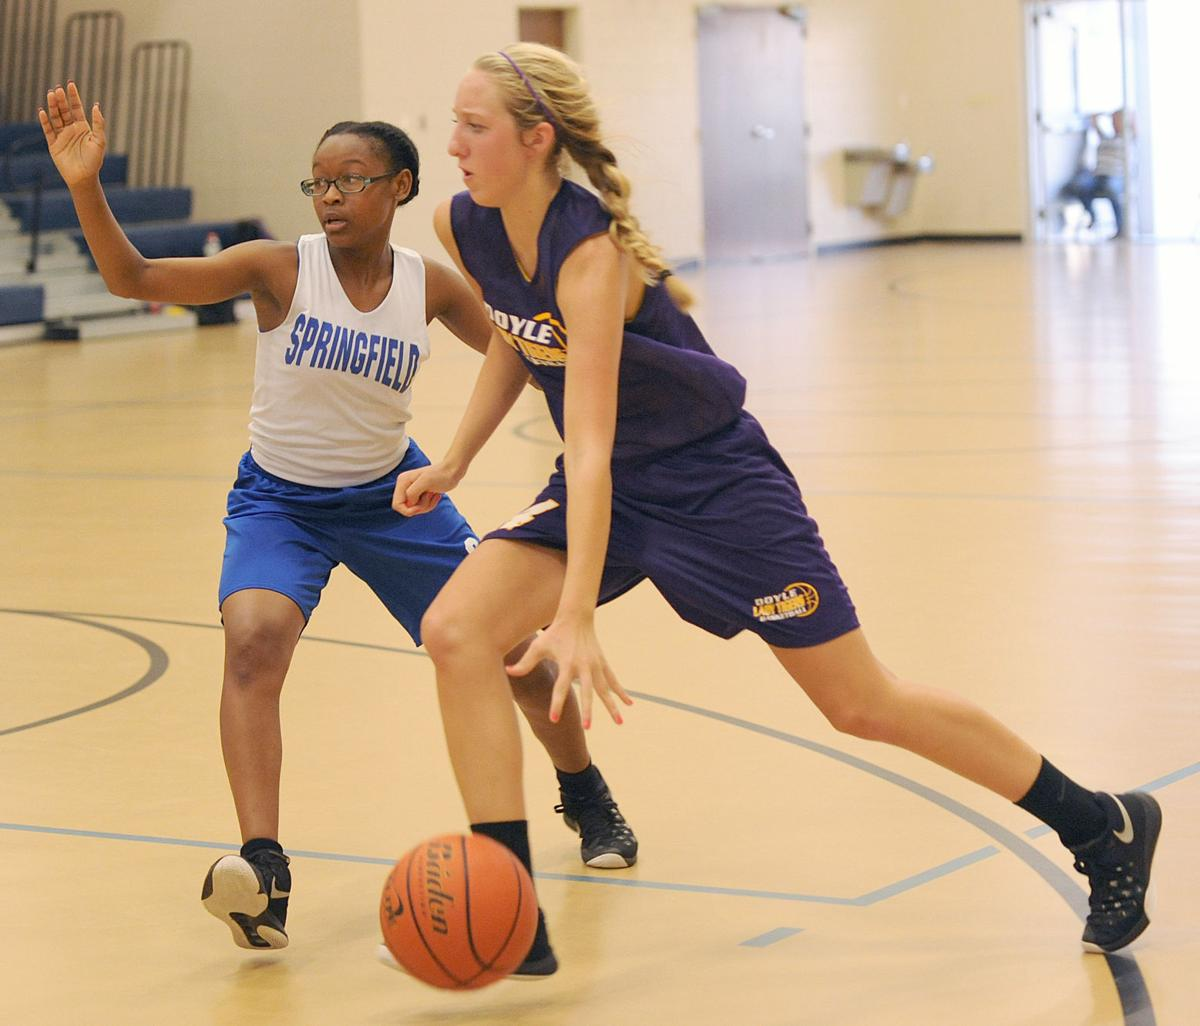 doyle girls crank up defense to ease past springfield local springfield girls basketball jessica claiborne doyle girls basketball lauren simms